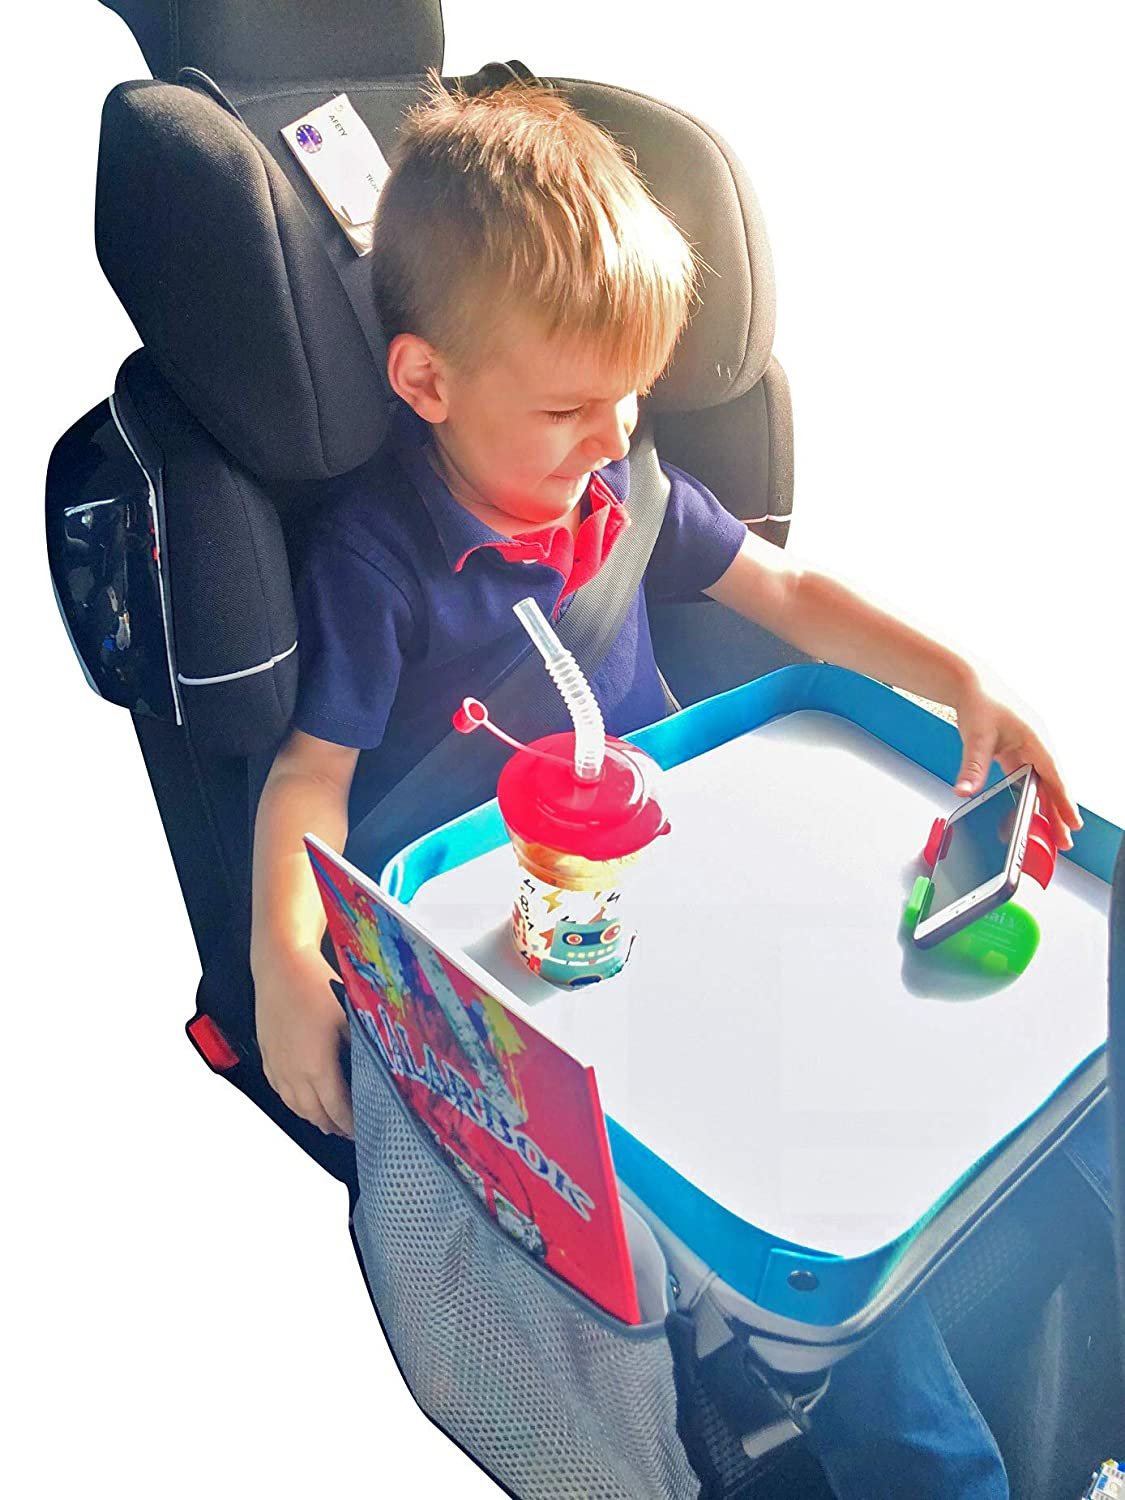 Kids Travel Tray - Car Seat Lap Tray for Children - Toddler Activity Travel Tray & Baby Stroller Snack Tray - Play Table + Free Coloring Book and Phone Holder - Portable & Waterproof KTCPRO